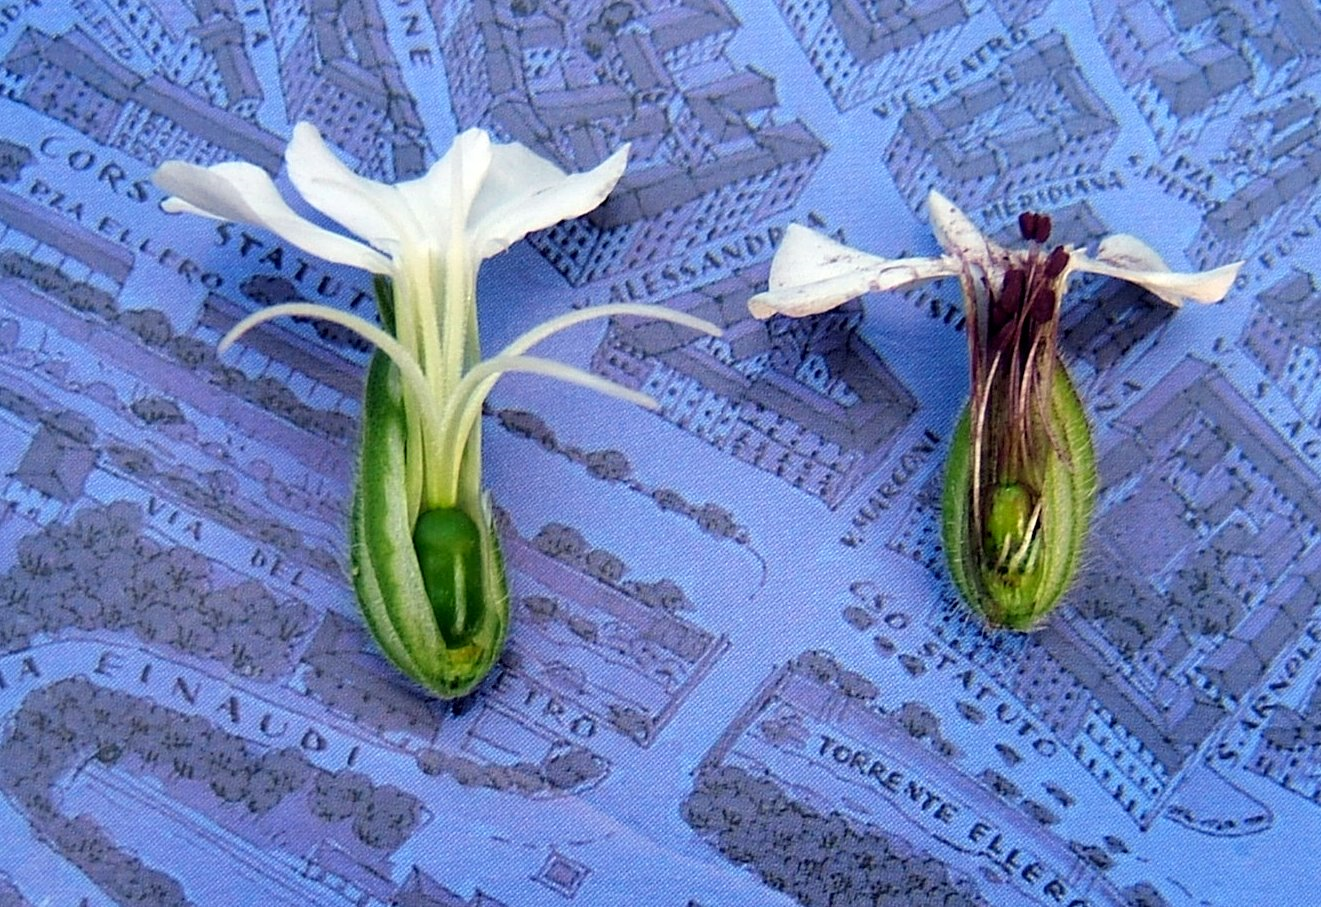 A healthy flower, left, and a smut-infected flower, right.